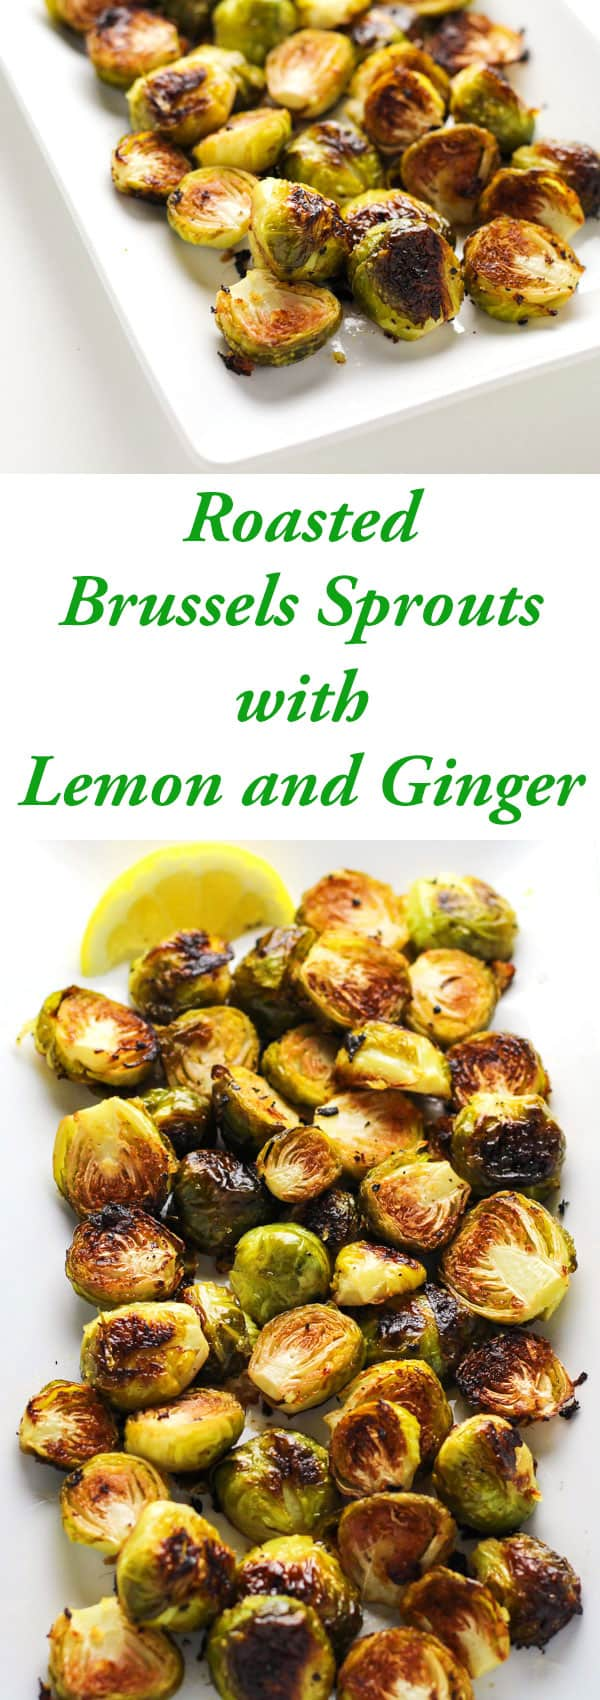 These Roasted Brussels Sprouts with Lemon and Ginger are so flavorful! This is a super easy side dish to make for a crowd or for just a few people. | Tastefulventure.com